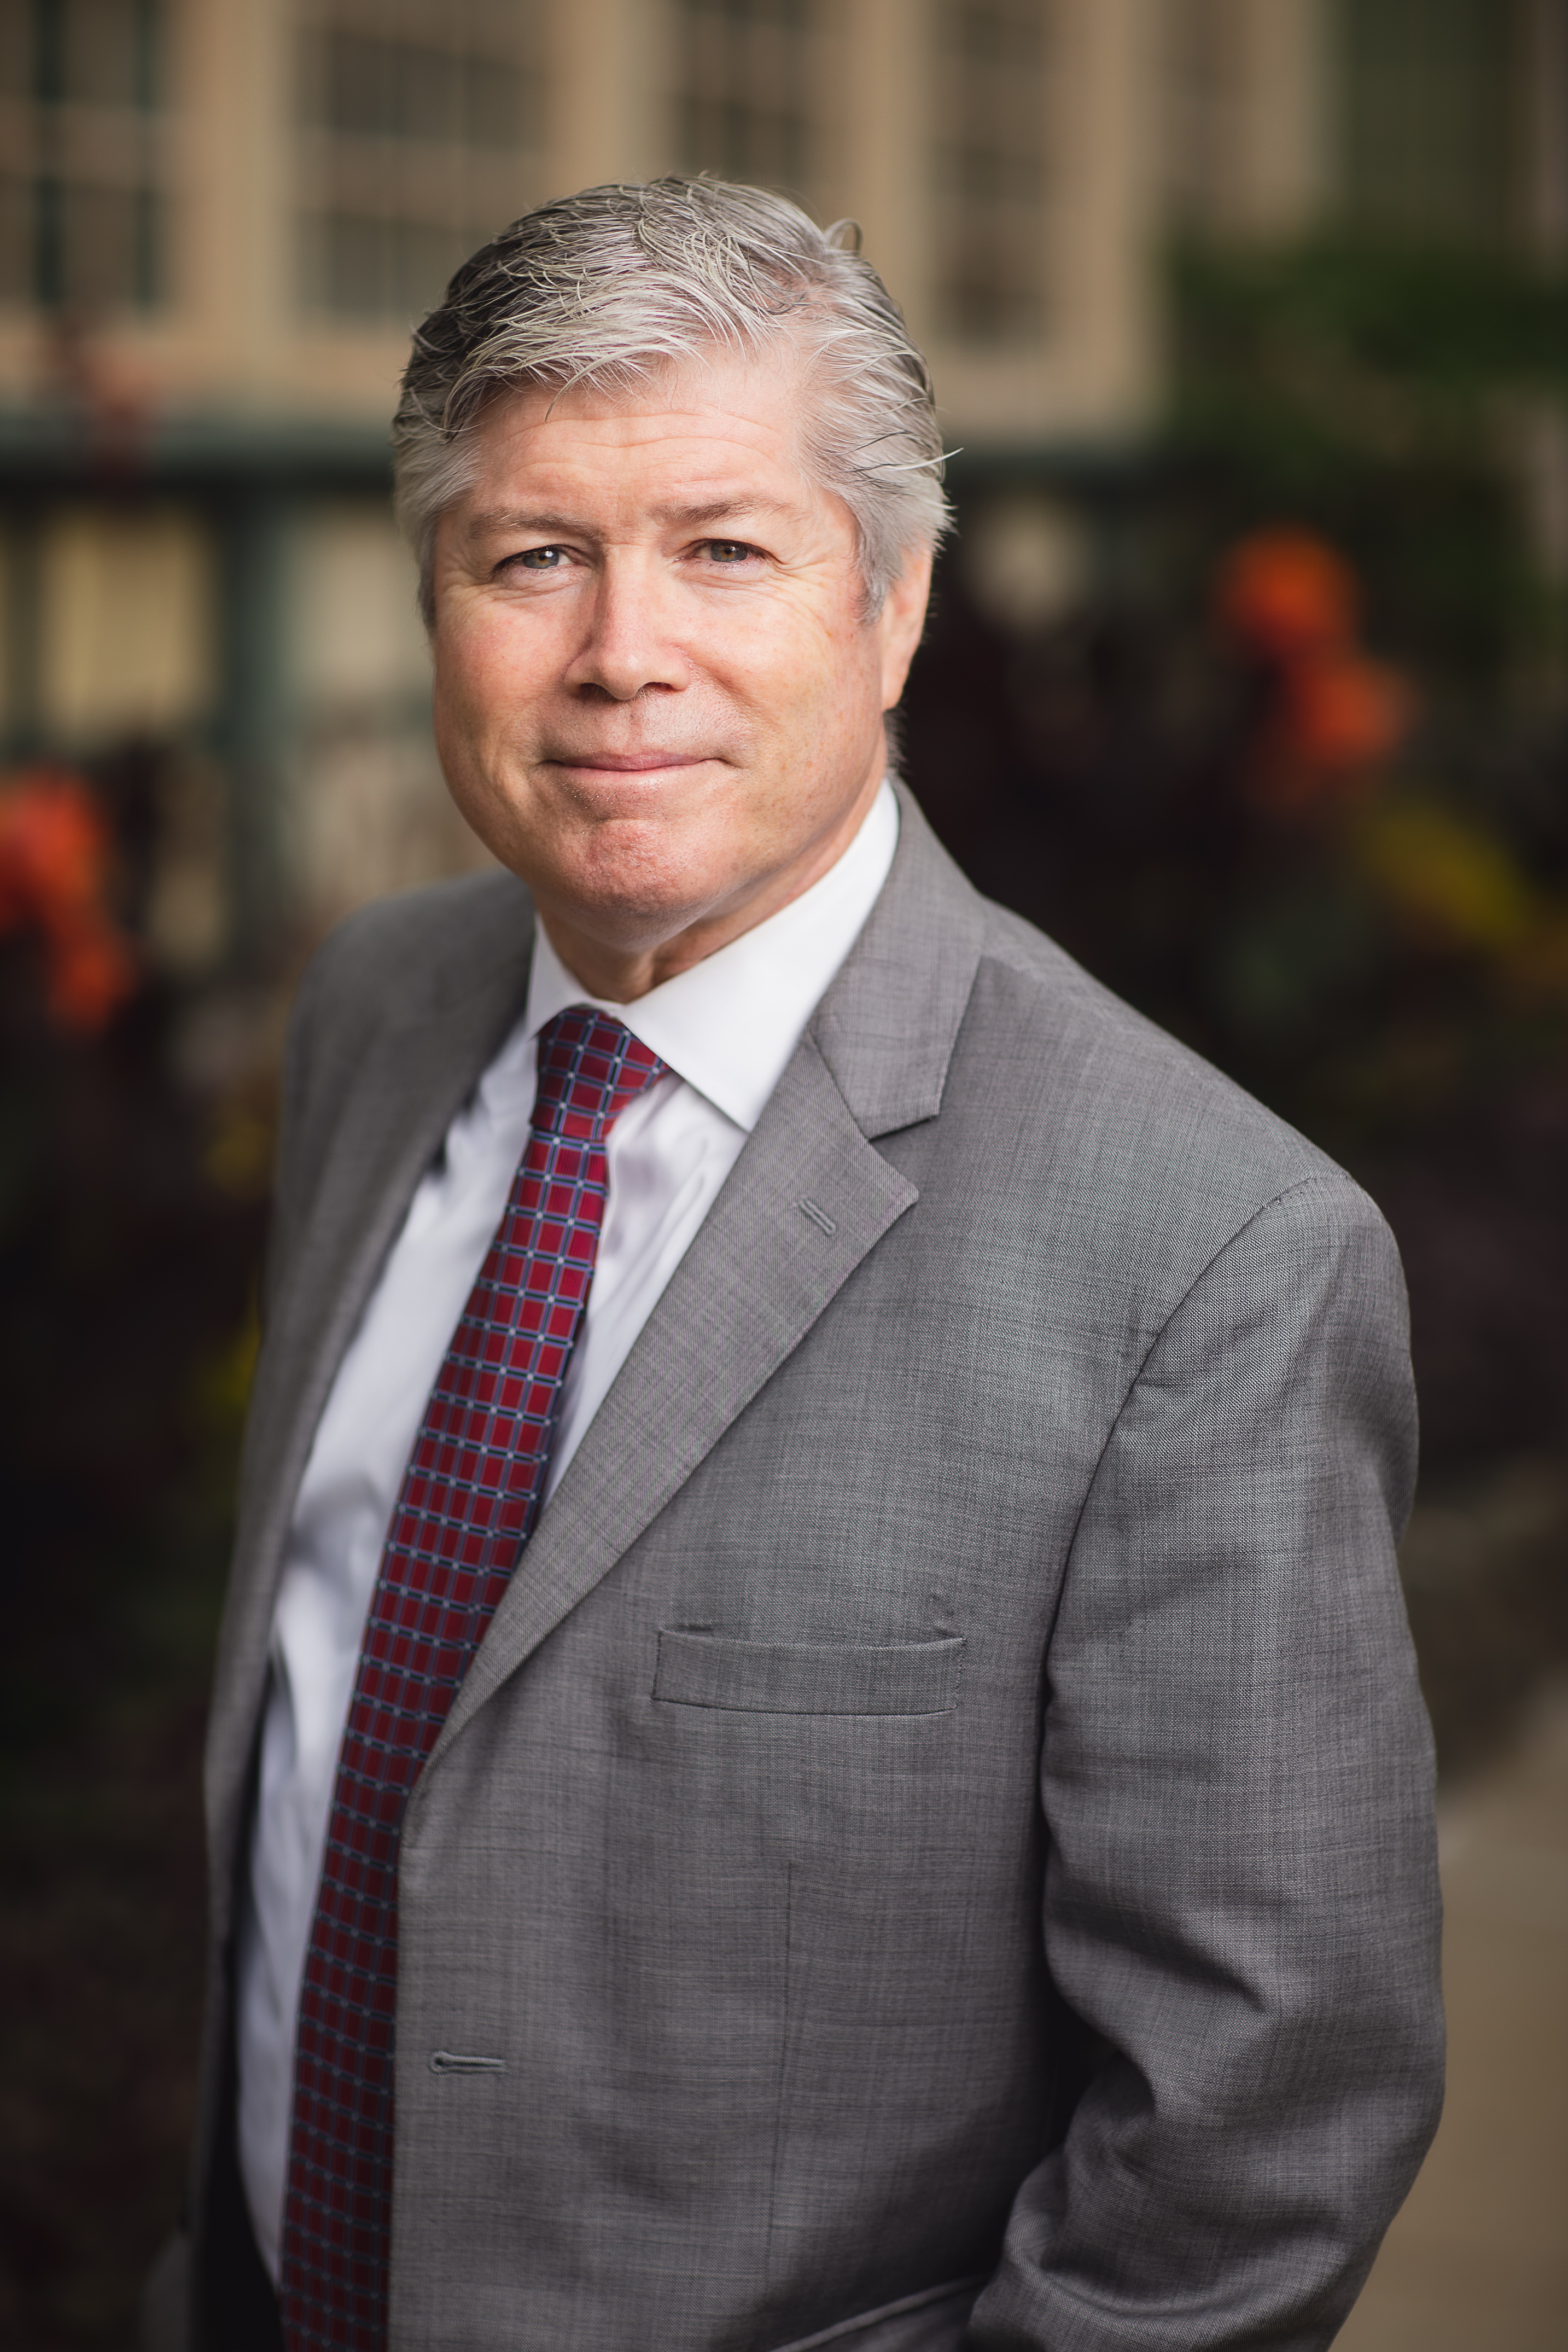 Wilson is a charming and insightful Maryland Attorney who has been the leader of Modern Estate Planning Techniques since the early 1990s.